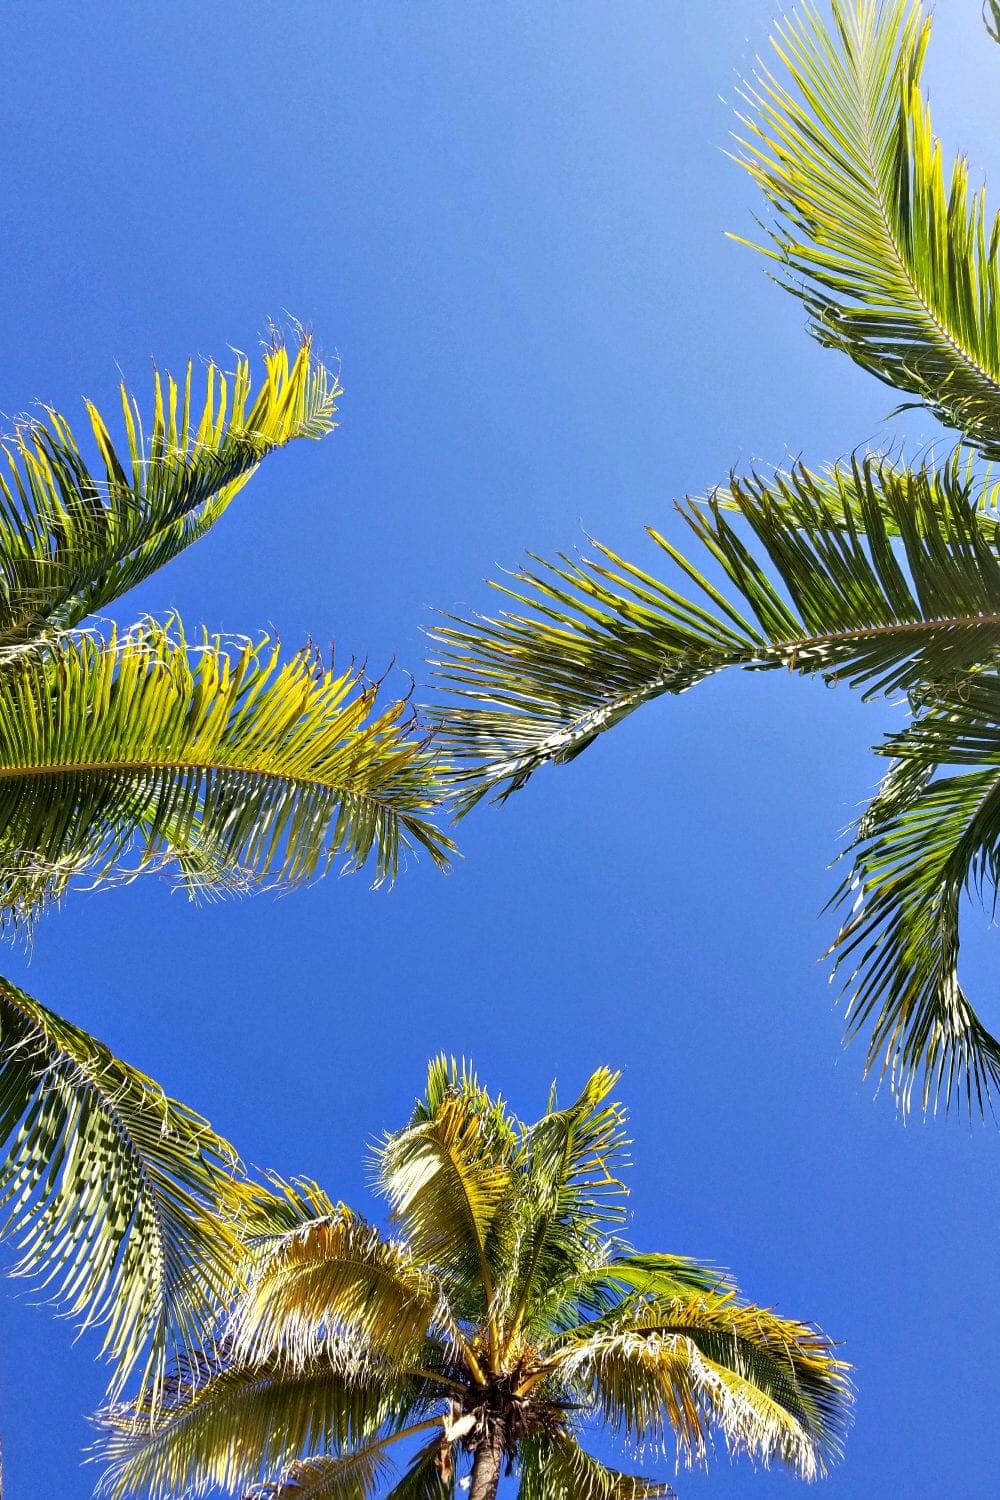 Looking up at beautiful Palm Trees